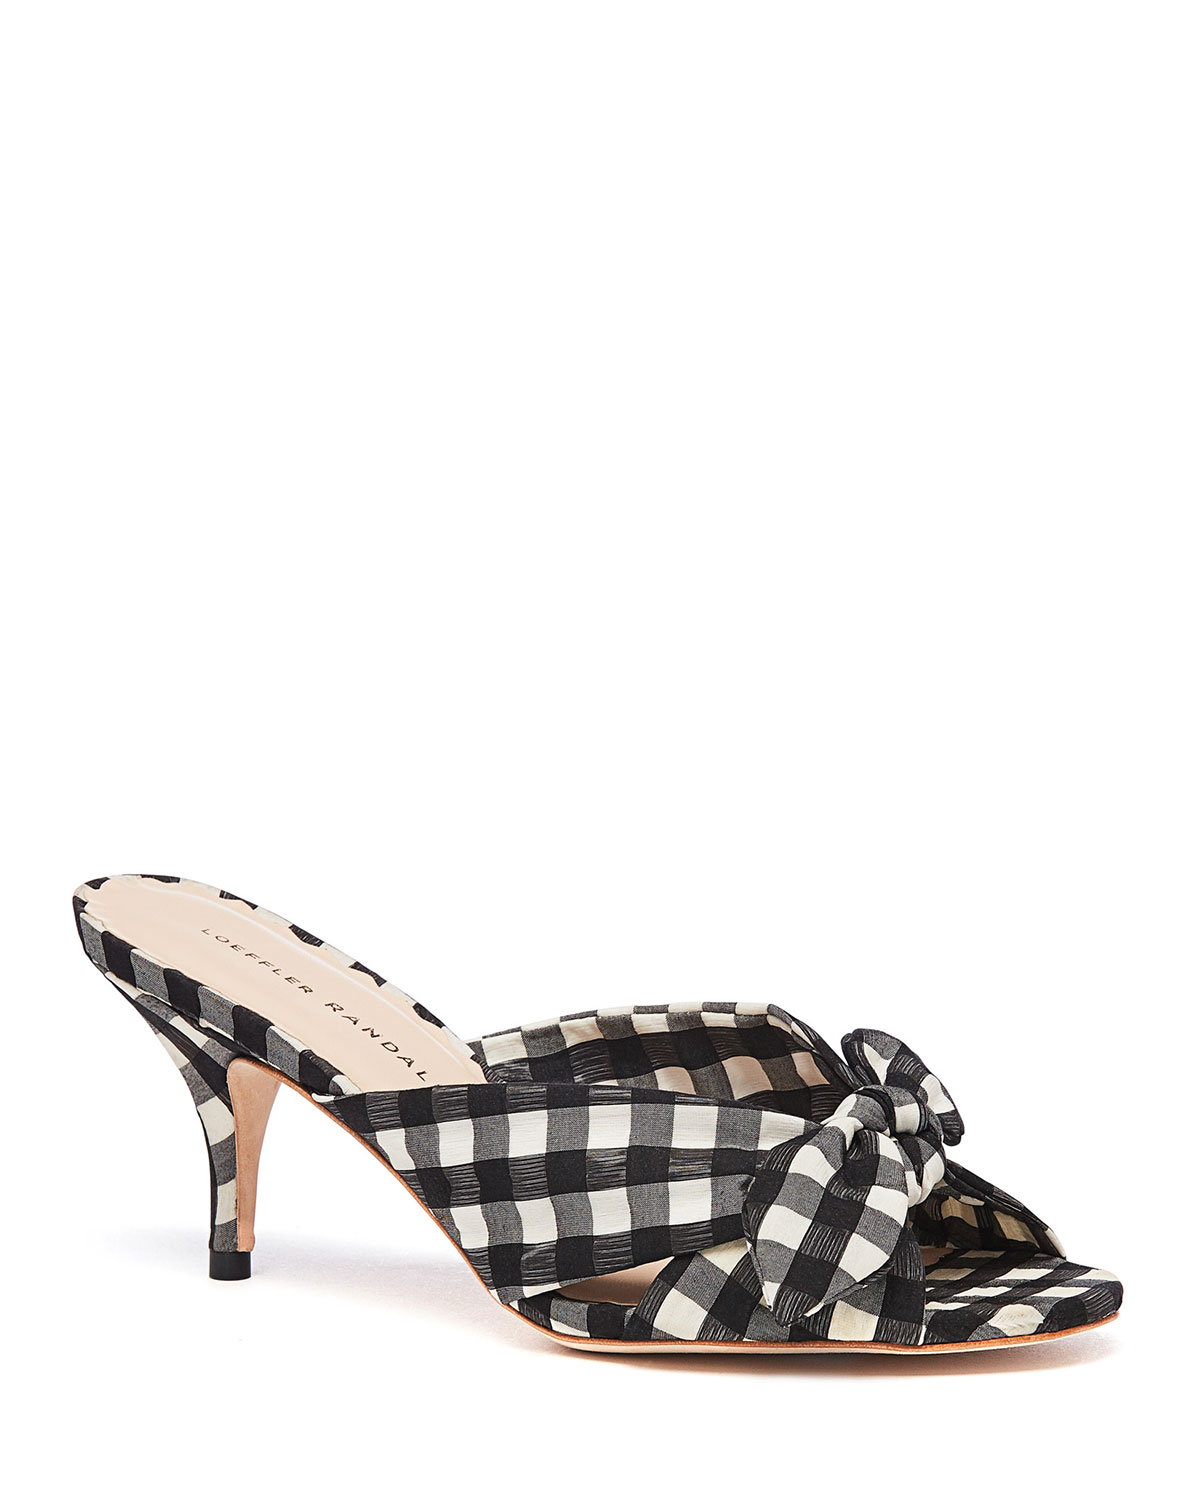 Luisa 55Mm Knotted Slide Sandals in Black/White